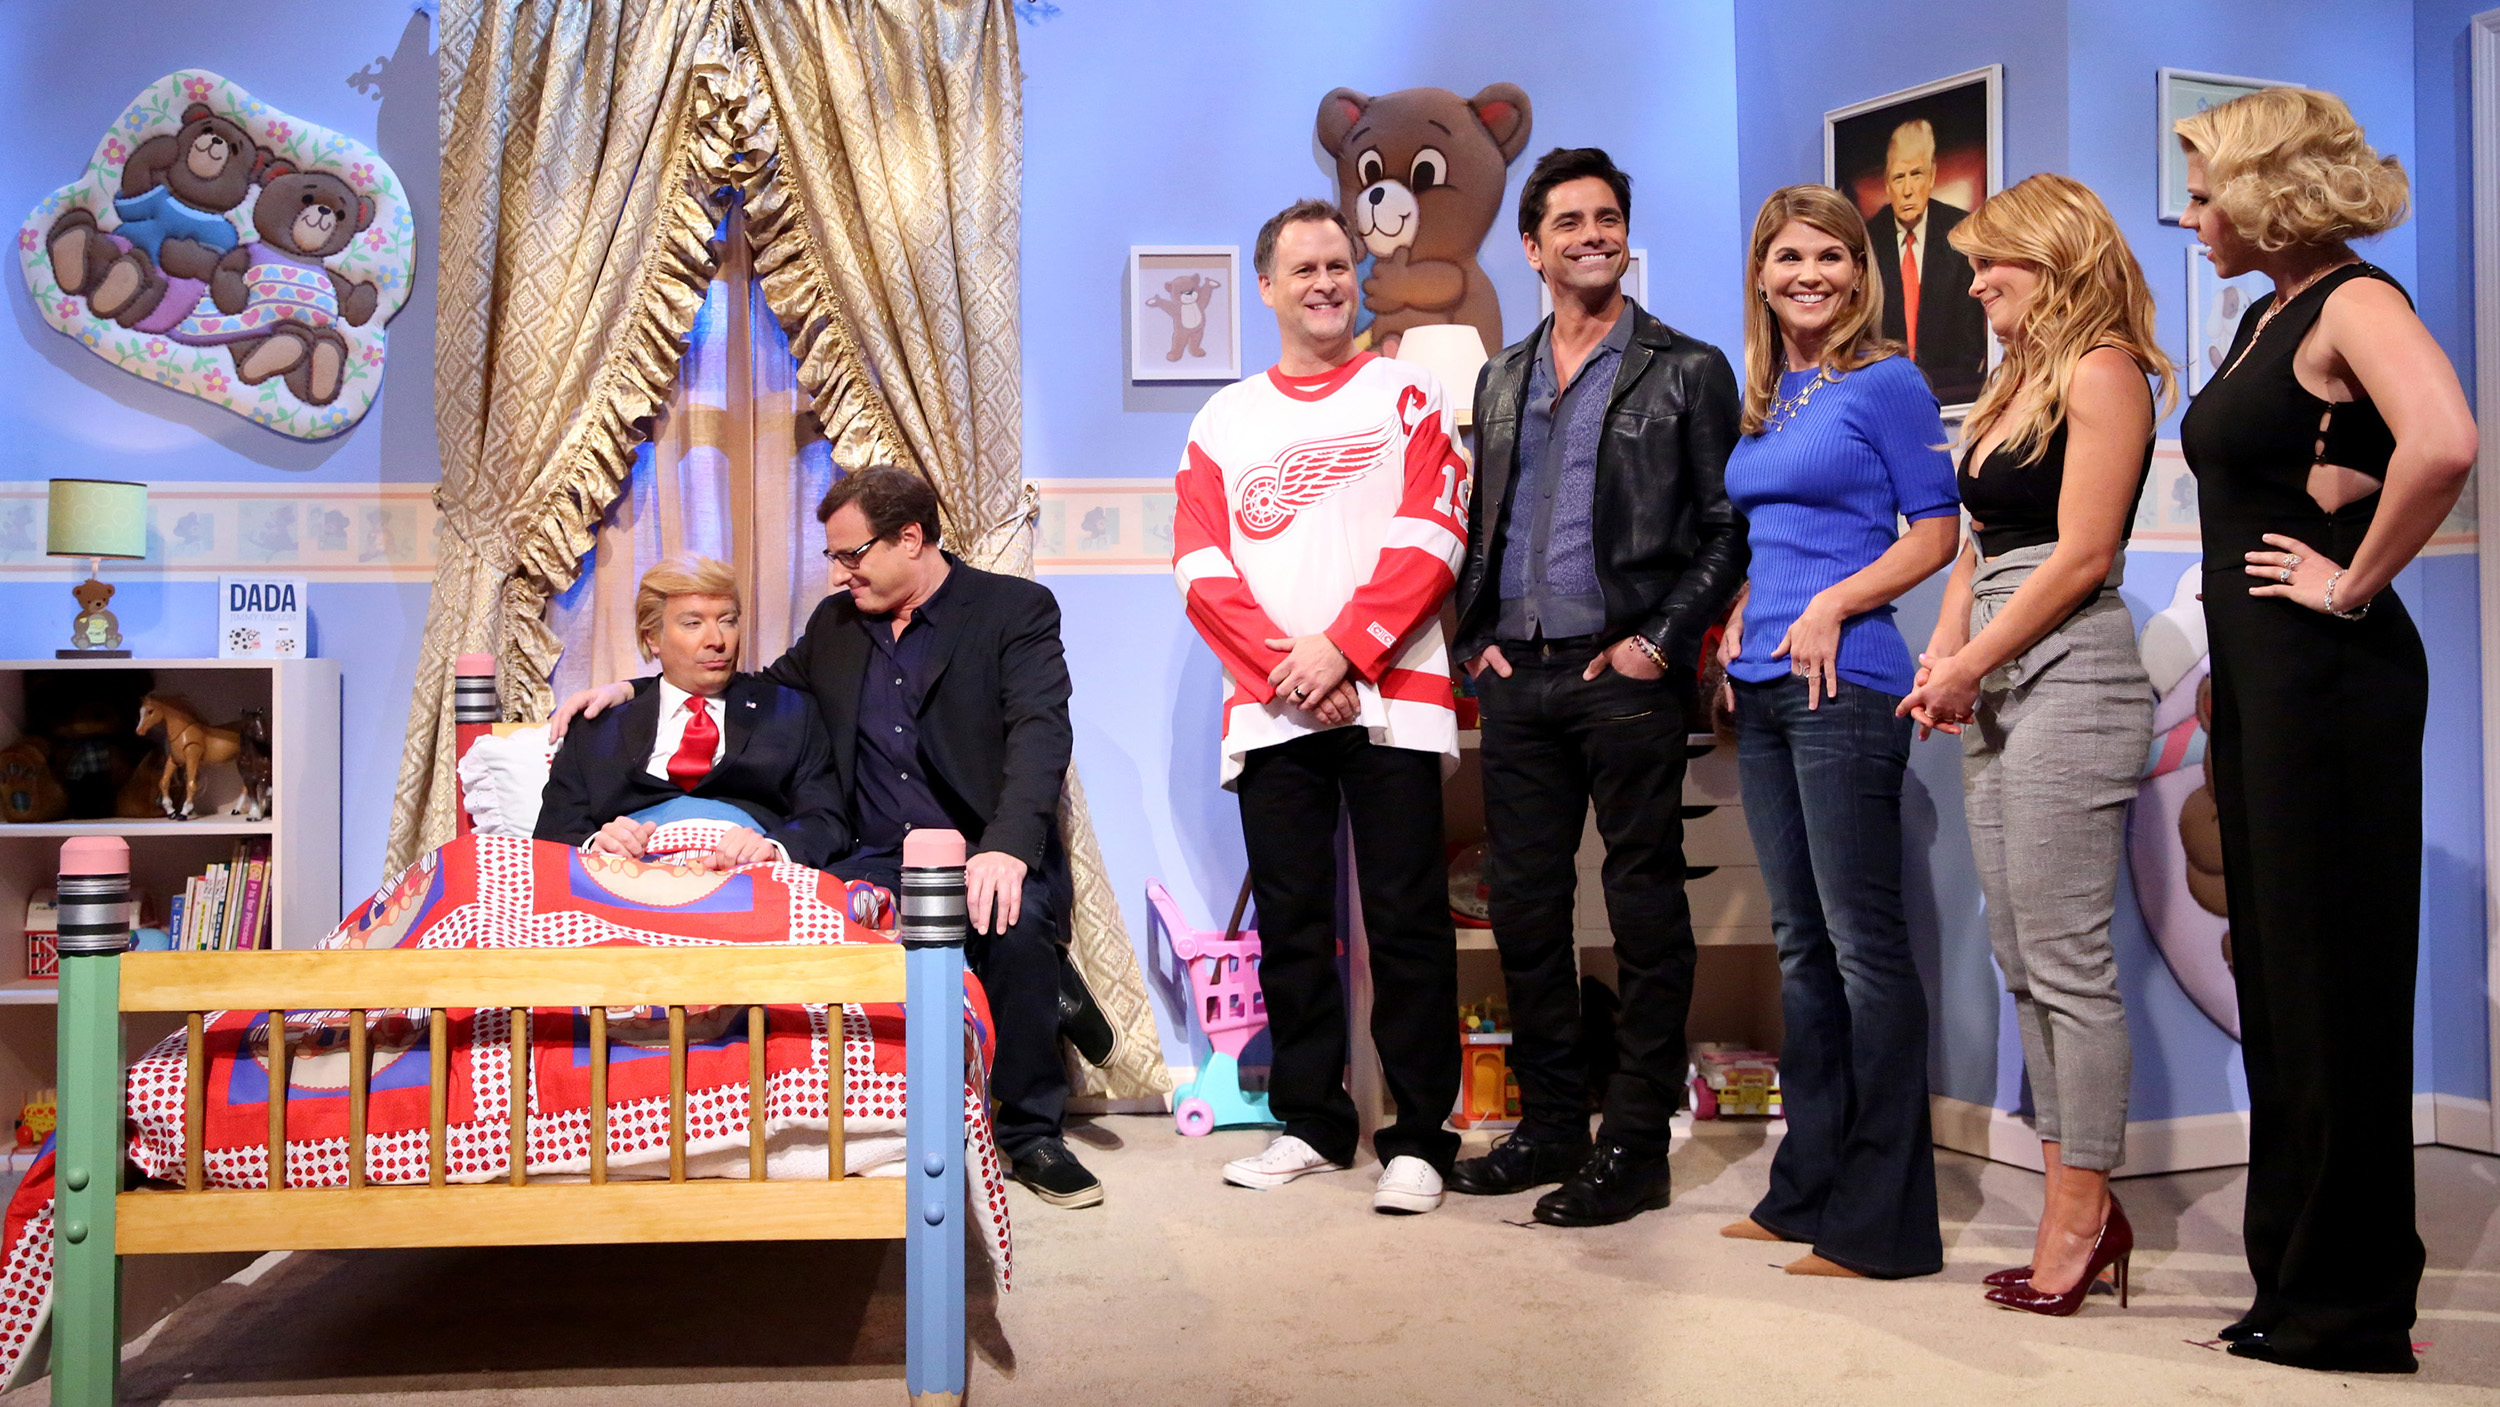 Full House cast reunites to cheer up Donald Trump on The Tonight